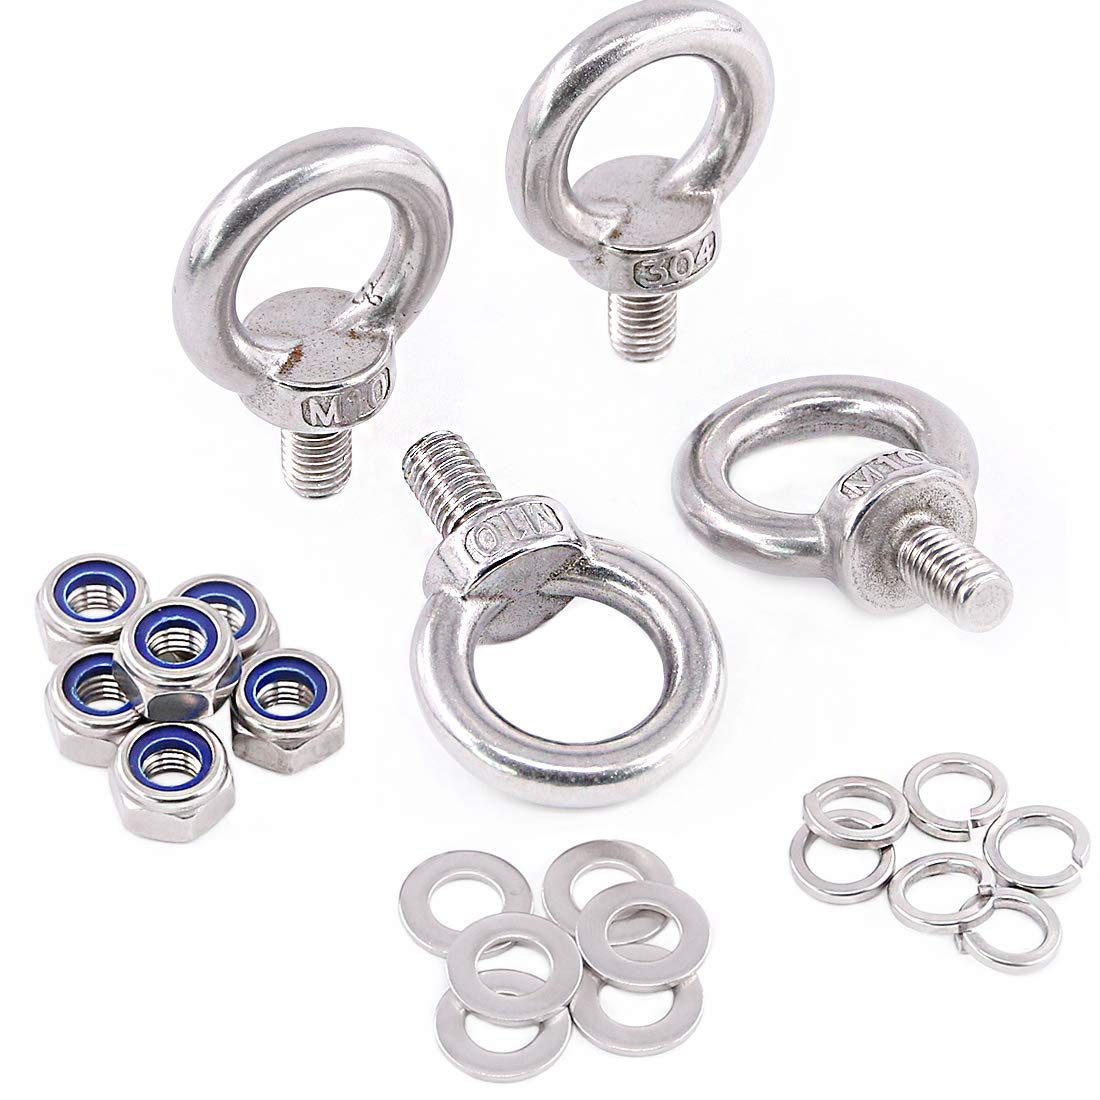 Glarks 22Pcs M10 Heavy Duty Screw Bolt, 304 Stainless Steel Male Thread Machinery Shoulder Lifting Ring Eye Bolt with Lock Nuts/Lock Washers/Flat Washers Set